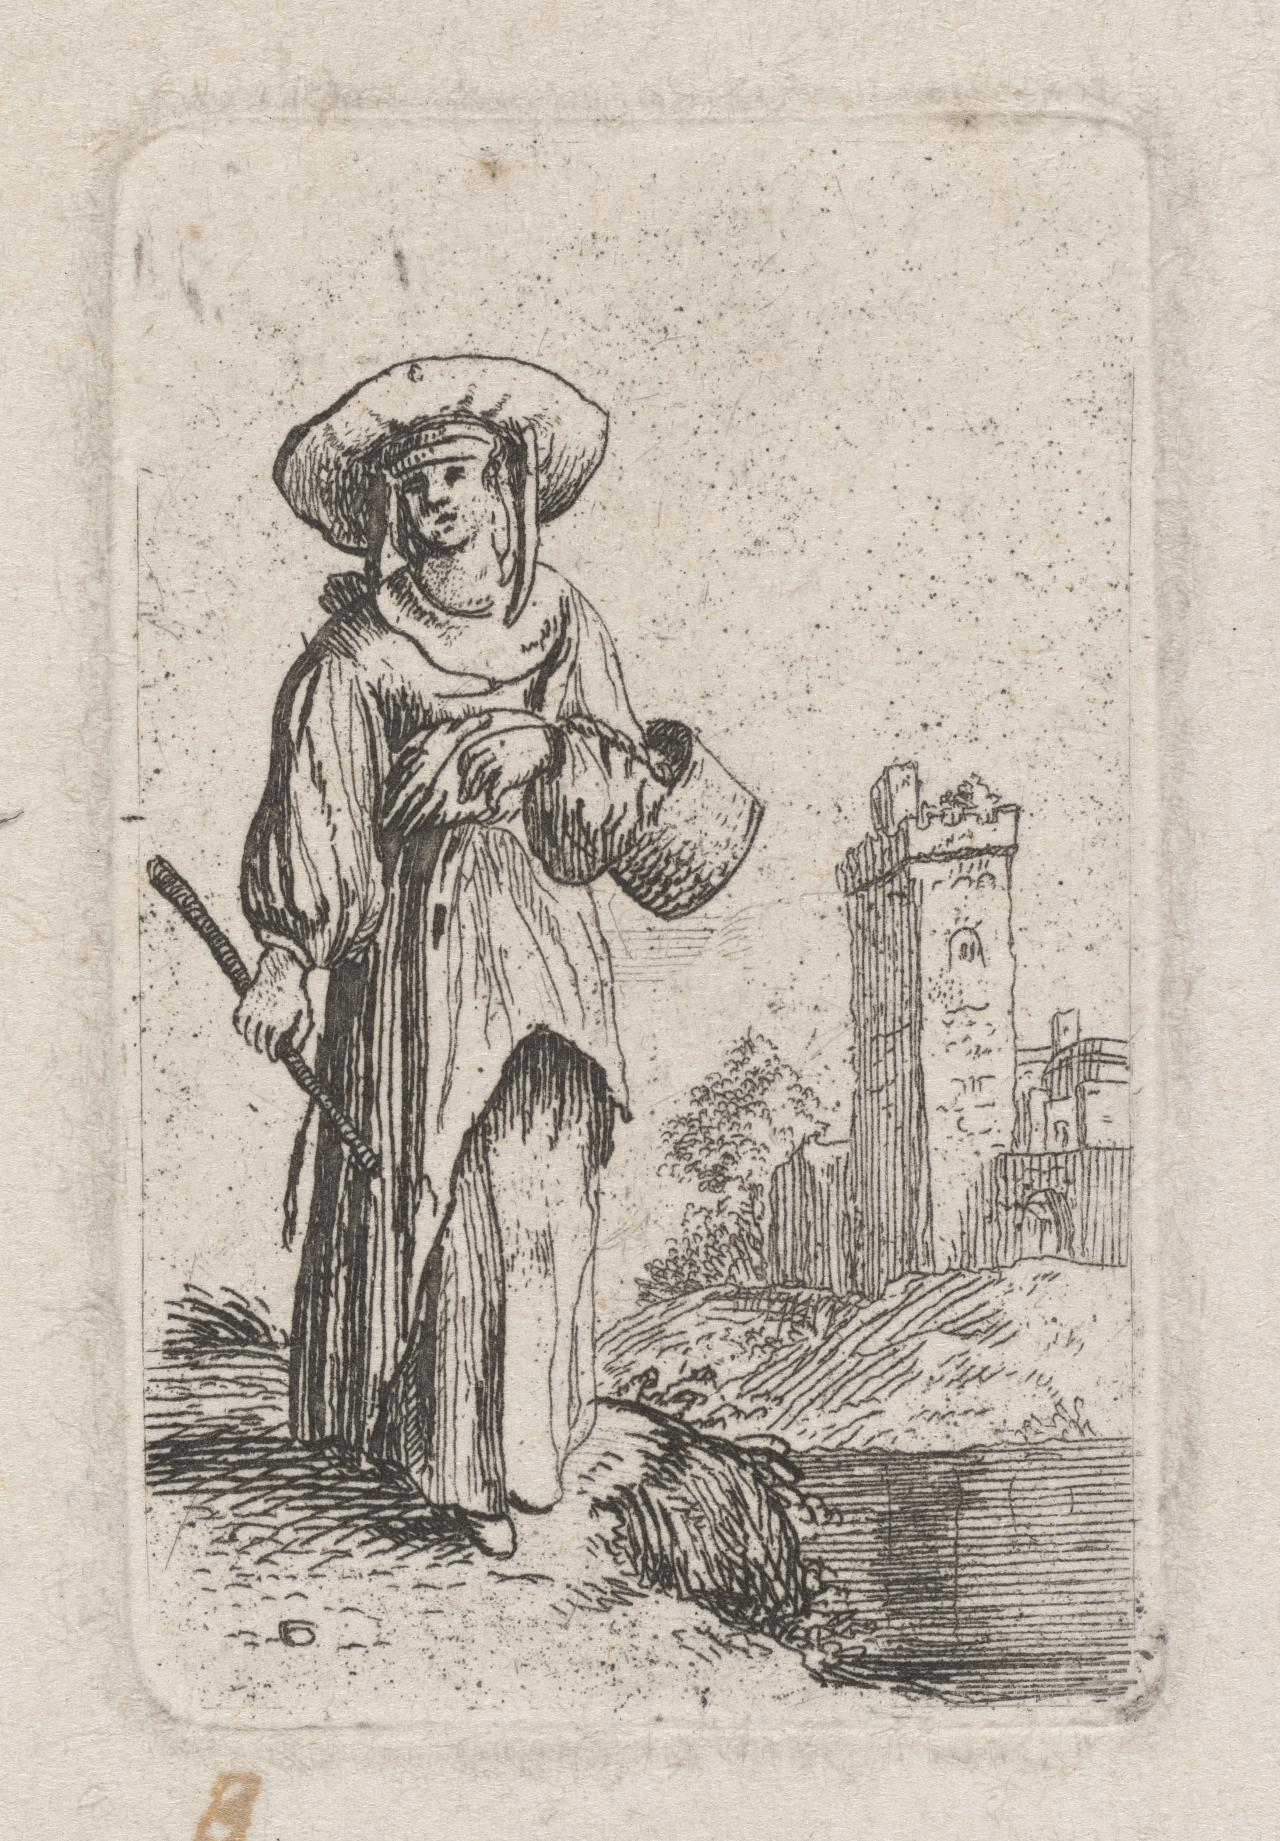 Woman walking with basket and stick beside a river